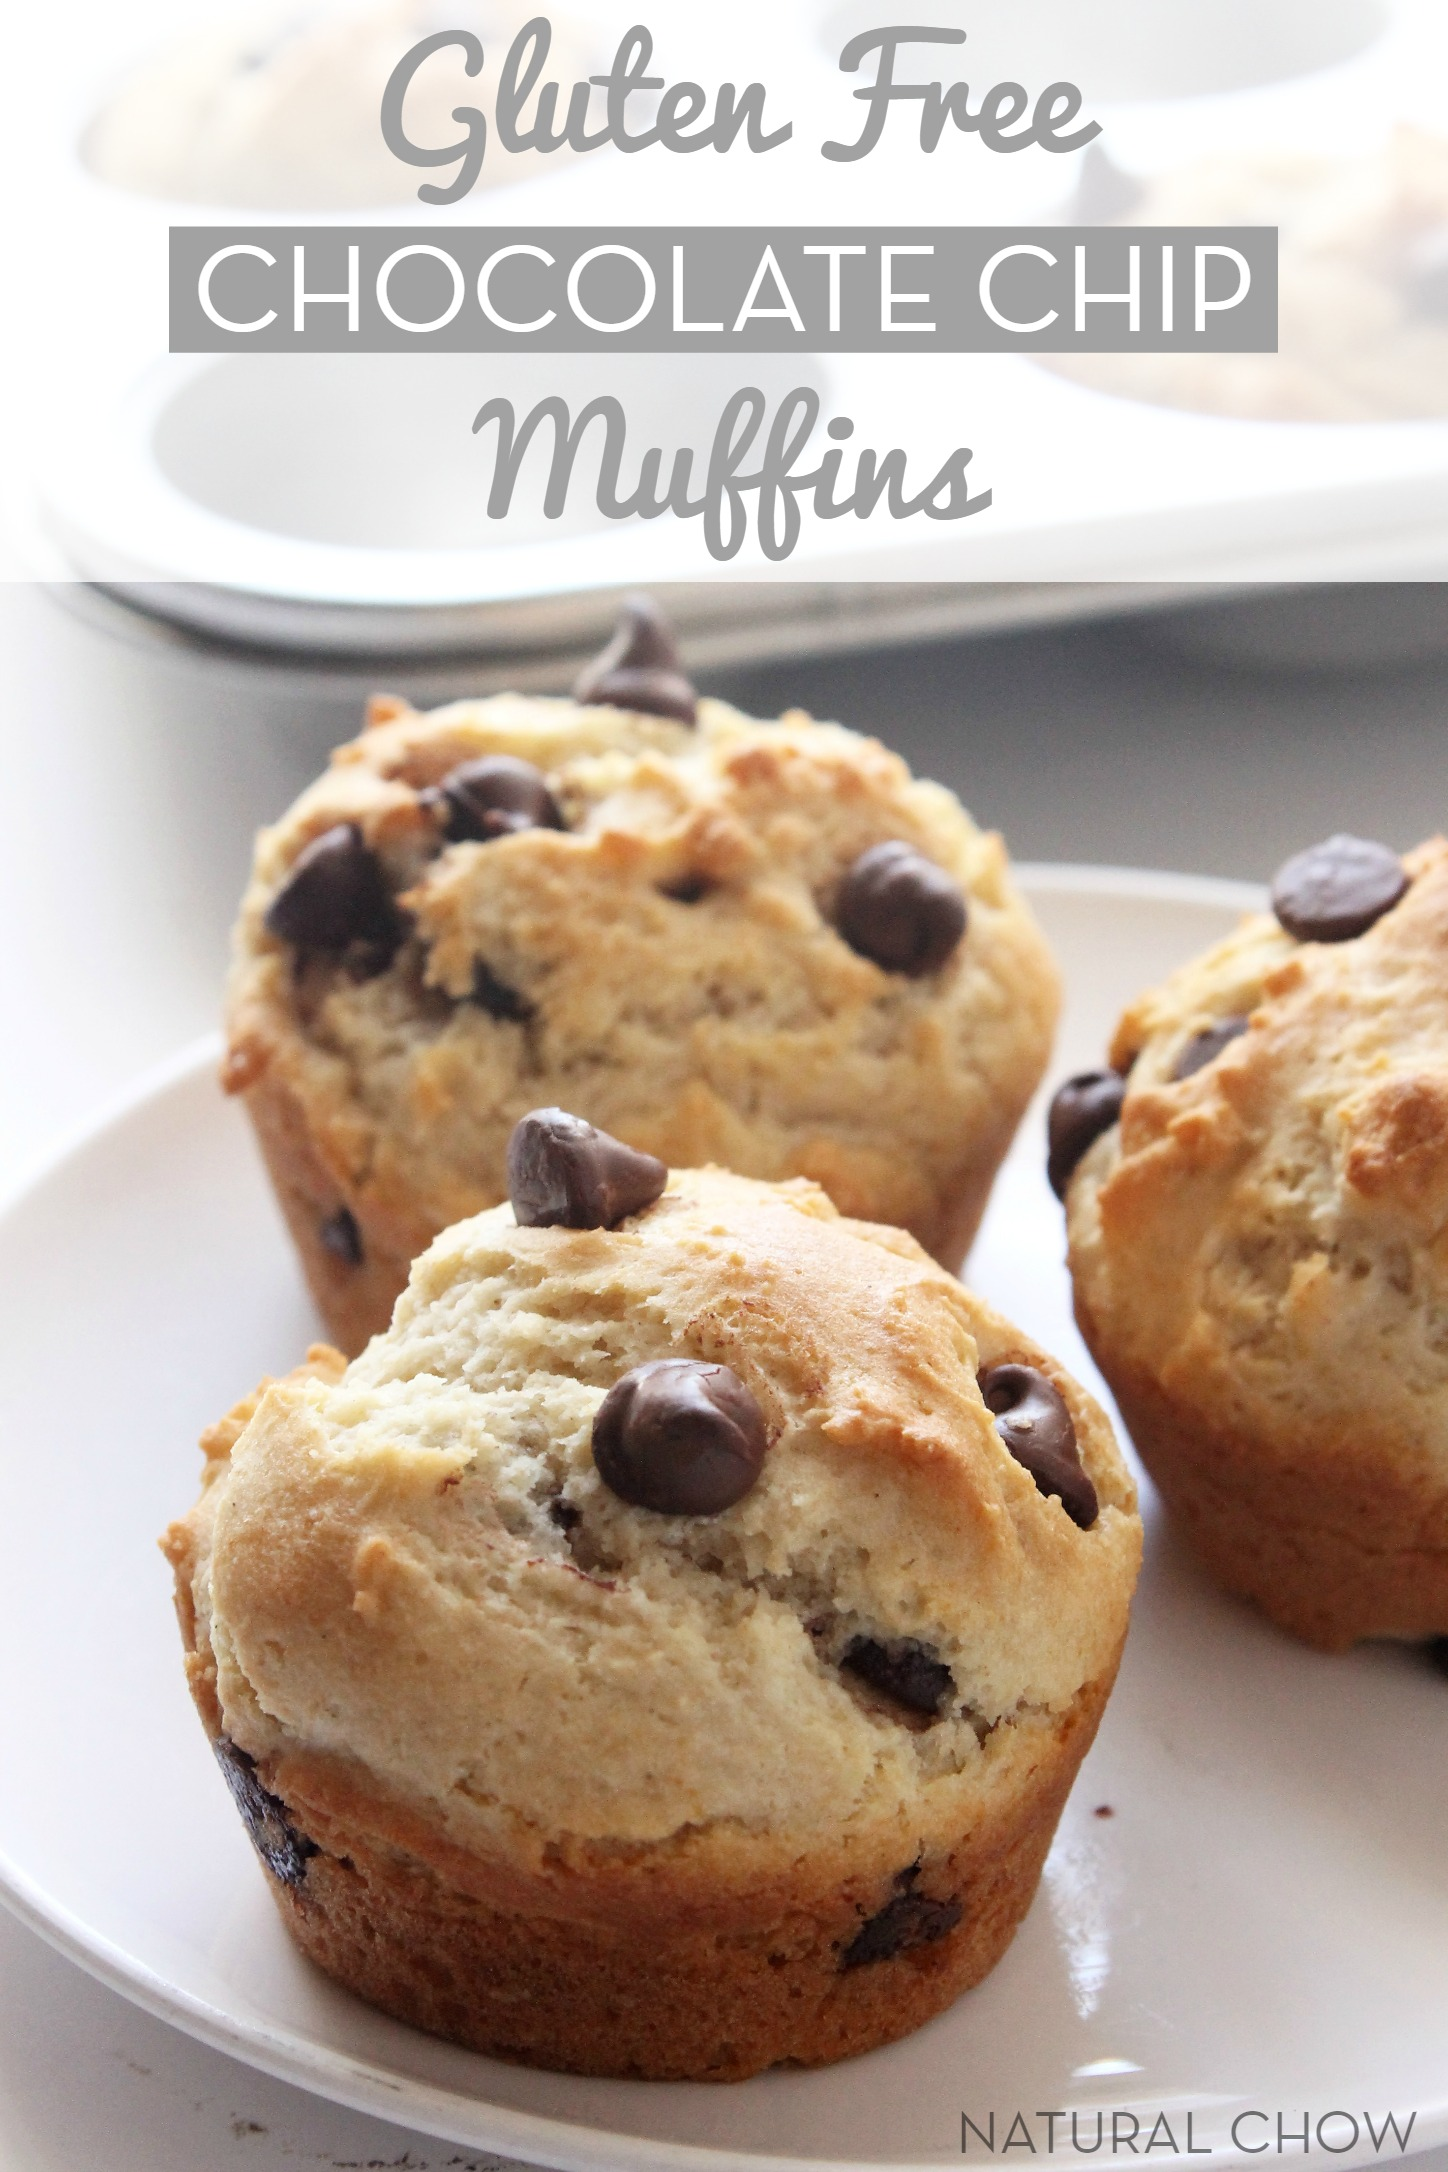 Gluten Free Chocolate Chip Muffins // The best gluten free muffins you will ever eat!